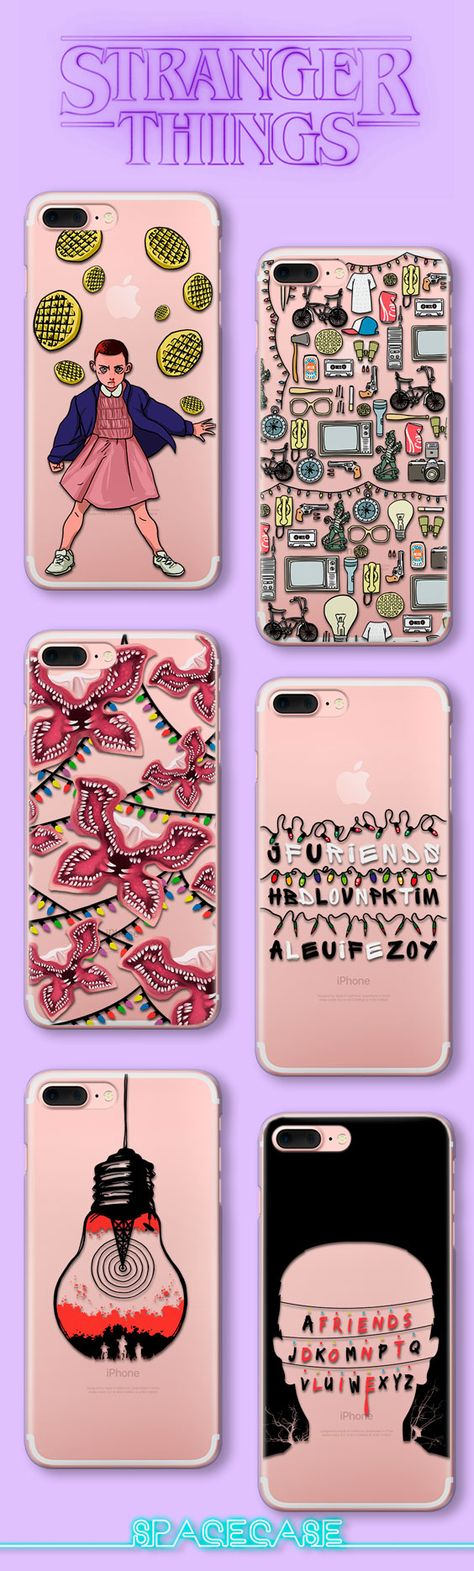 Stranger Things iPhone 8 iPhone X iPhone 7 Plus Eleven